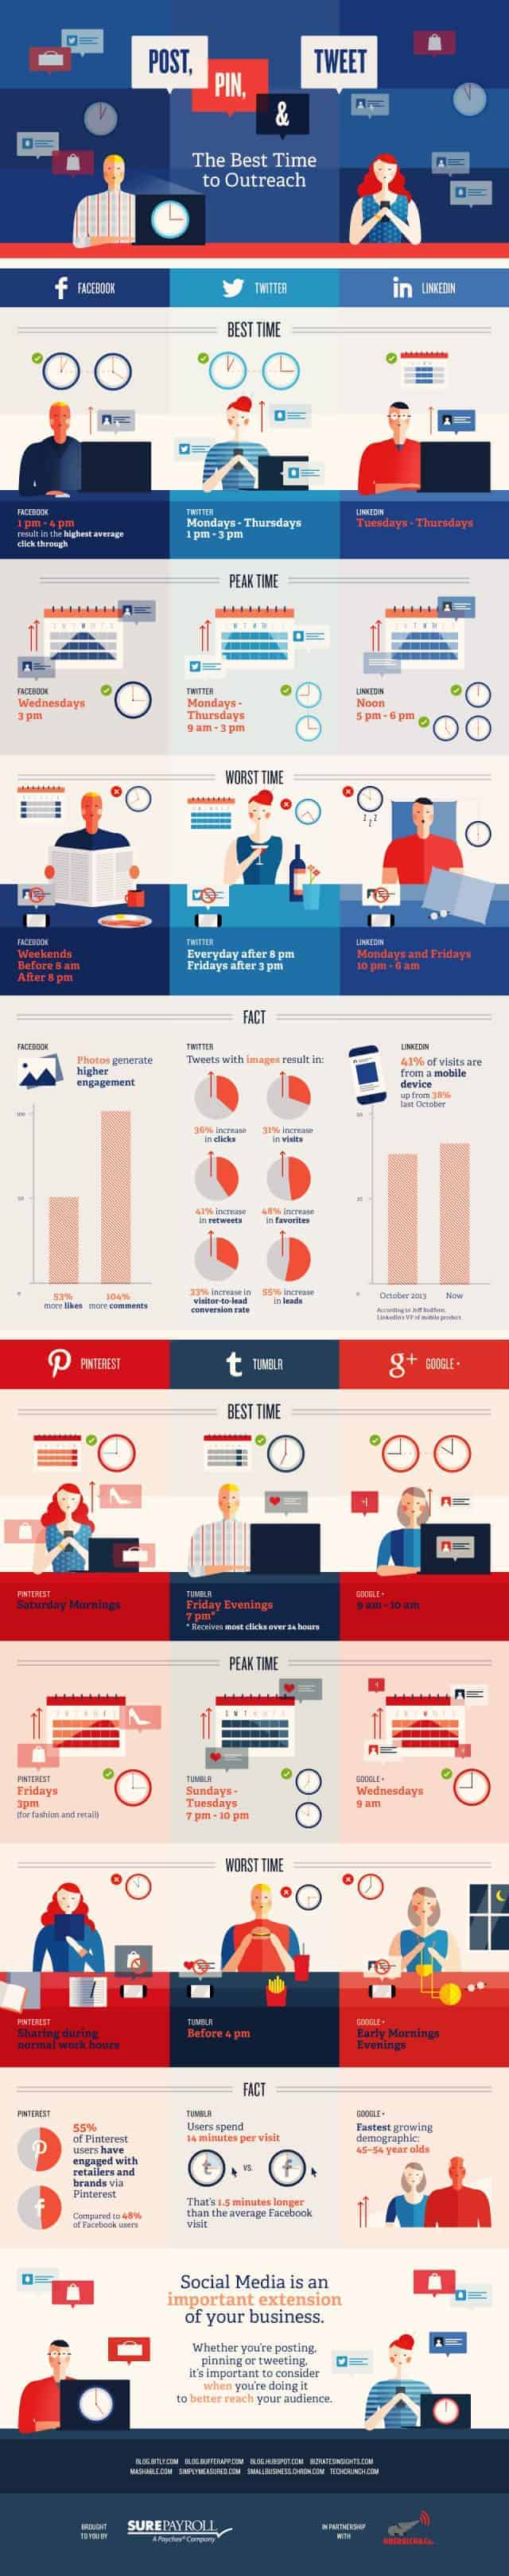 Social Media The Best Time to Outreach Infographic